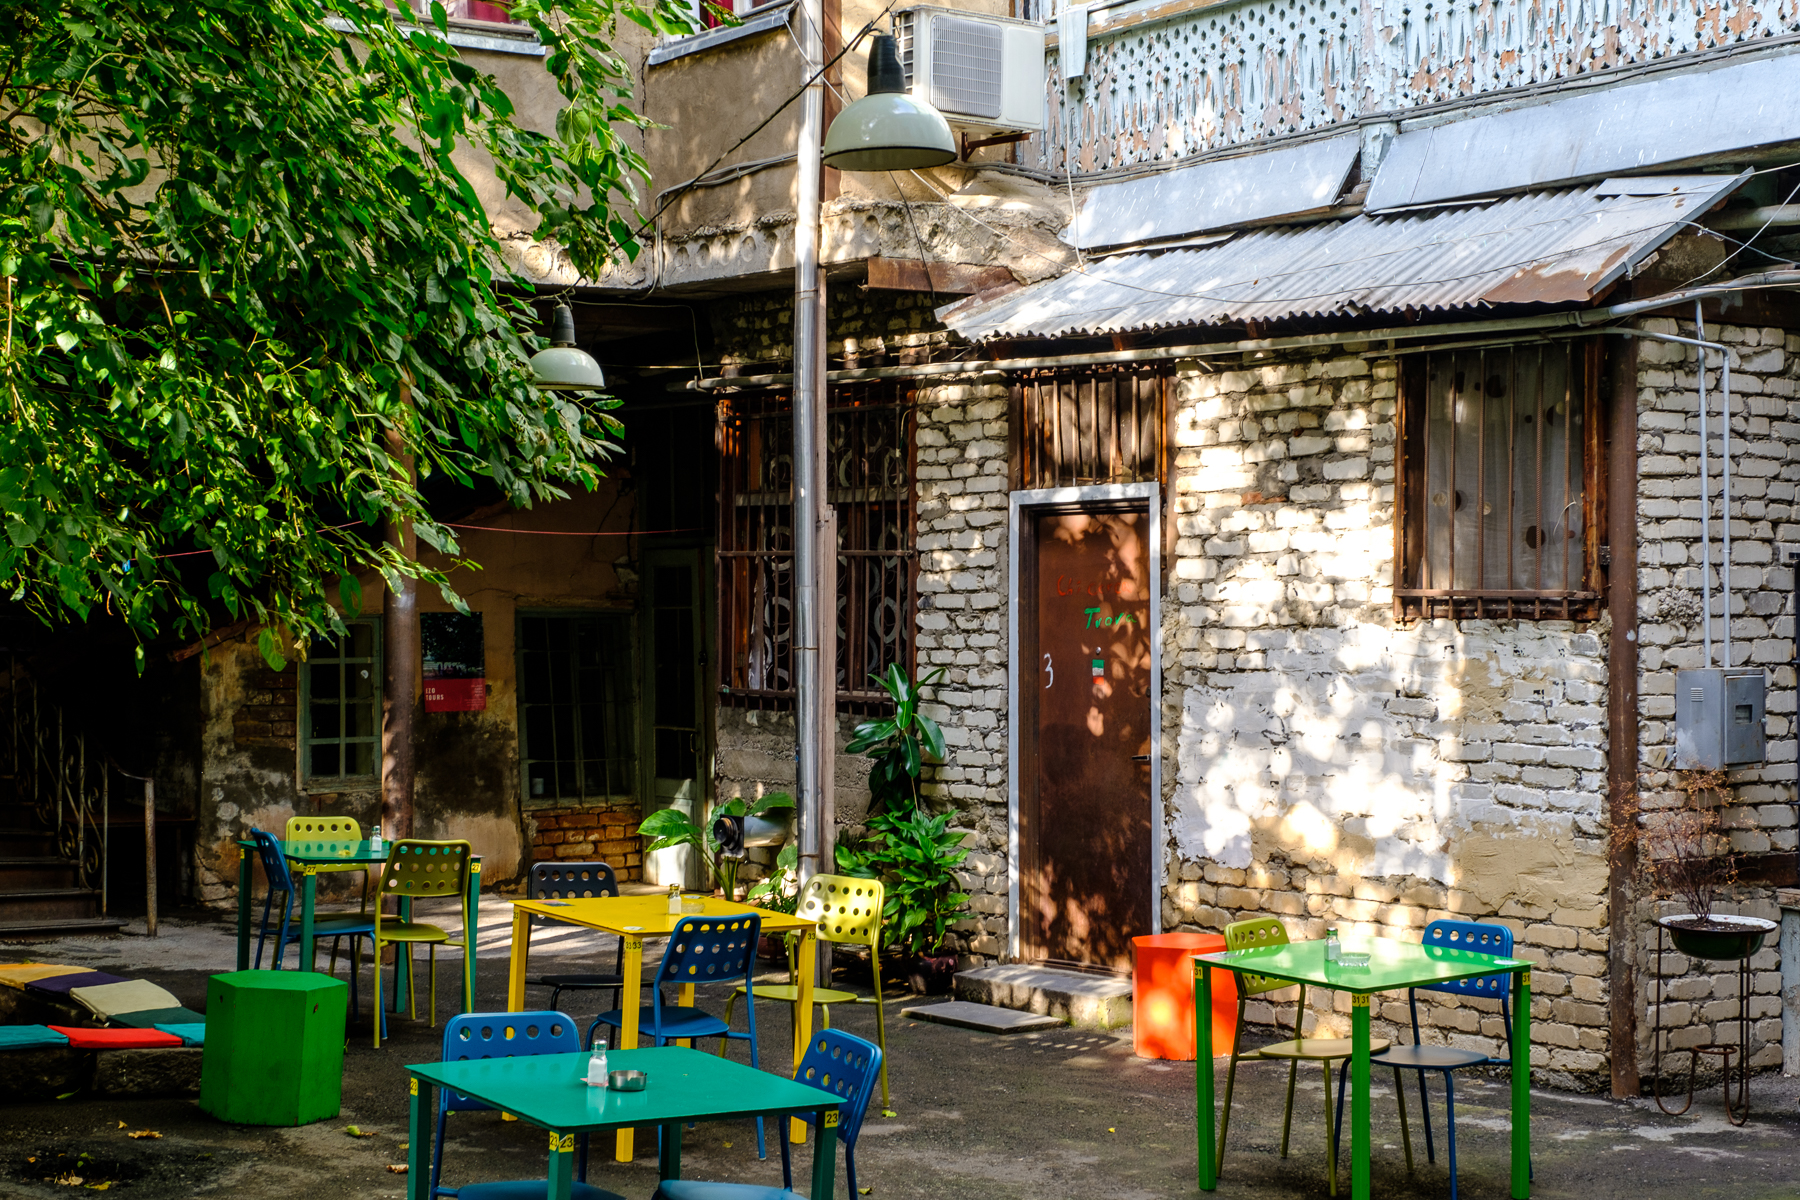 Ezo: farm to table - Set in a courtyard, bordered by a verandah, the casual ambience belies a dedication to traditional food, impeccably prepared and presented.